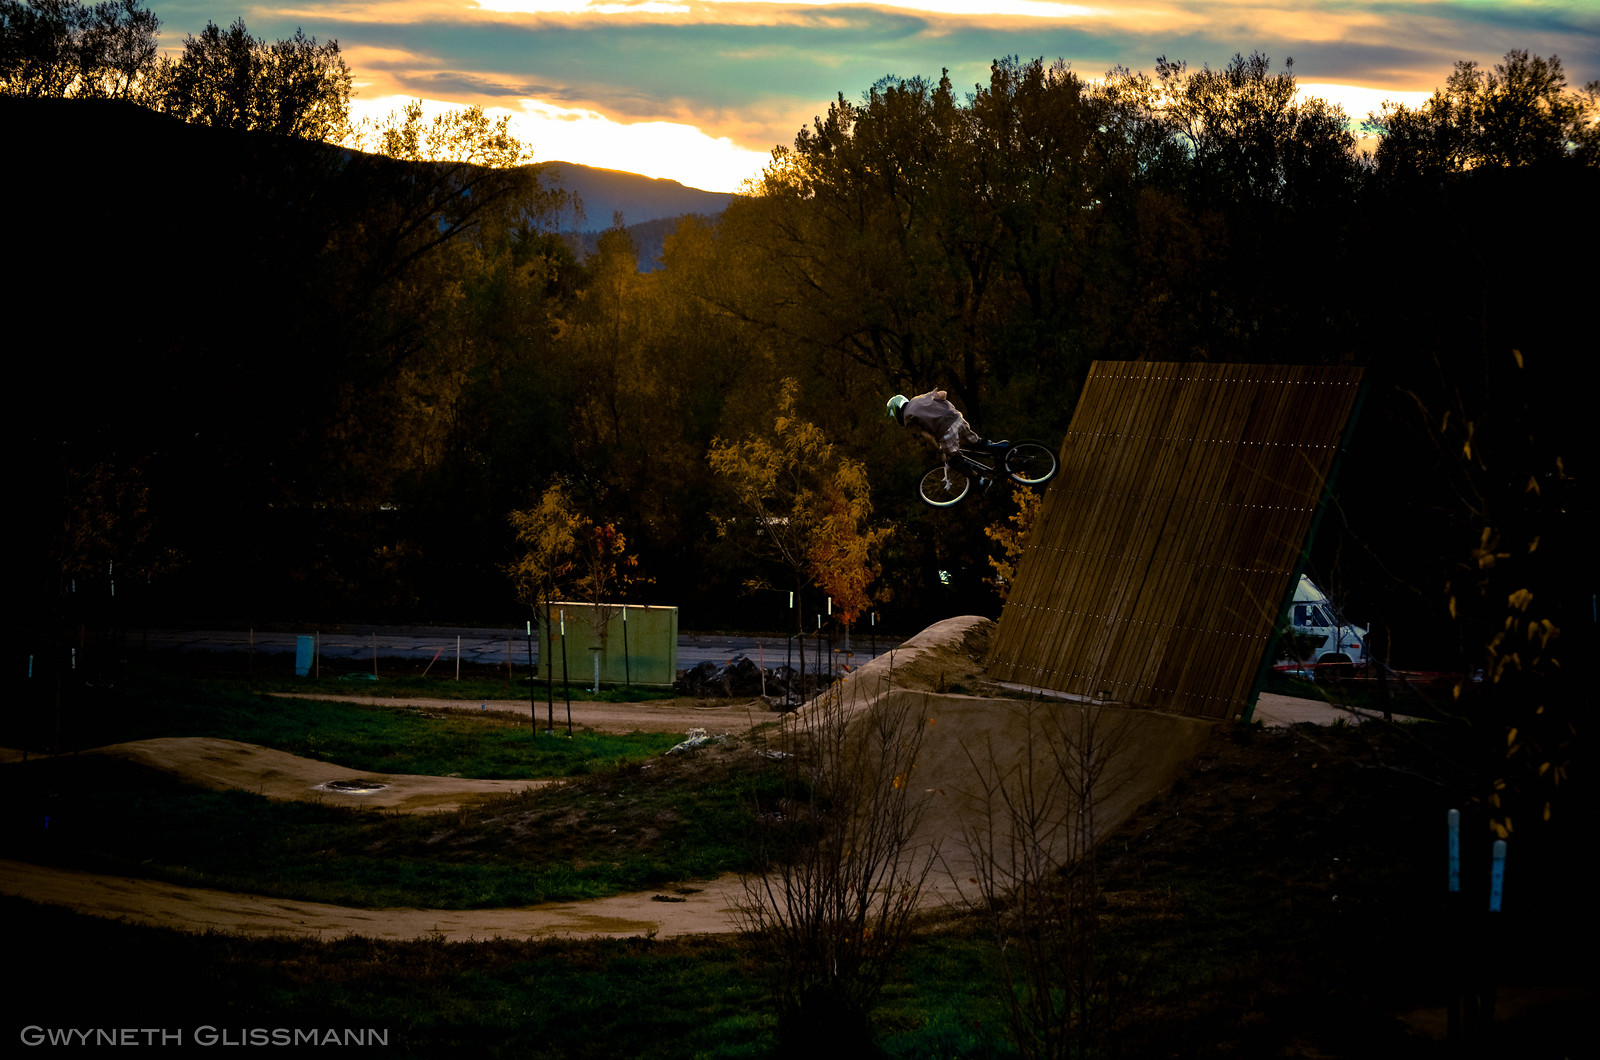 Kevin Rauhauser at Valmont Bike Park - rhiannon - Mountain Biking Pictures - Vital MTB